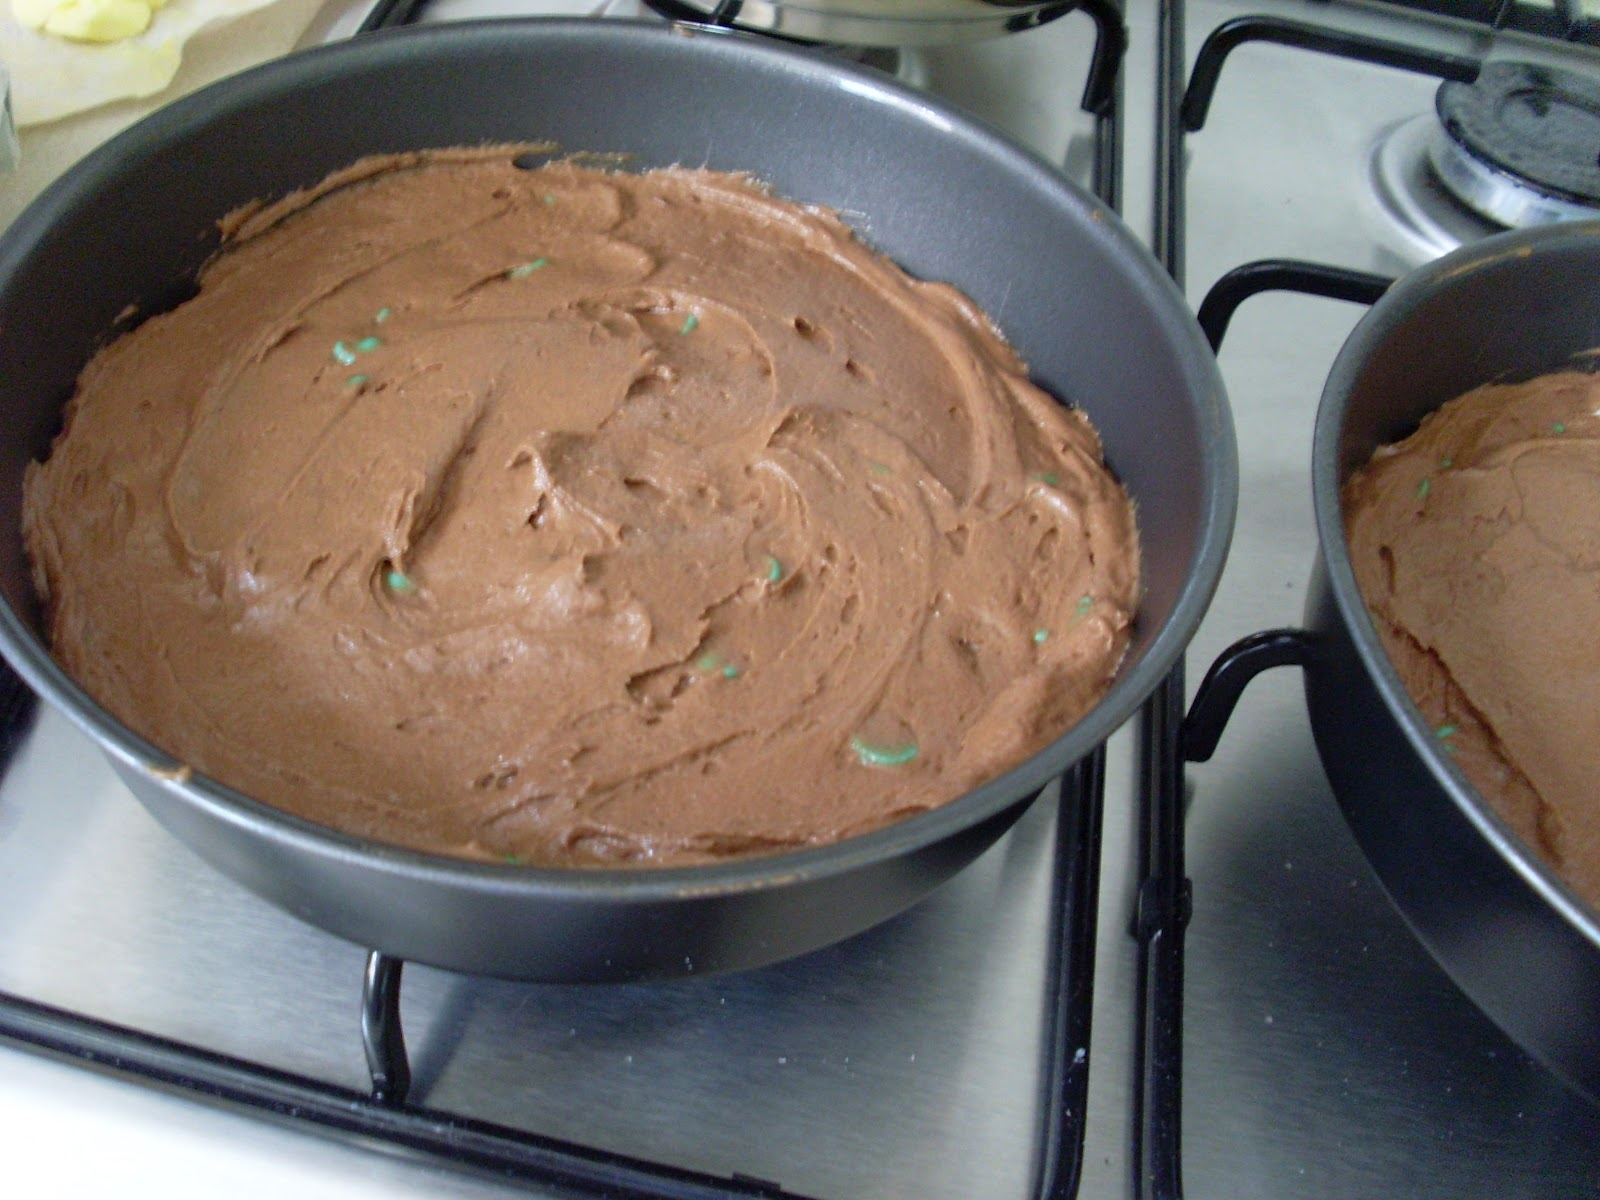 Cake Recipe With Icing In The Batter: Cakeyboi: Chocolate Mint Chip Cake (with Mint Choc Chip